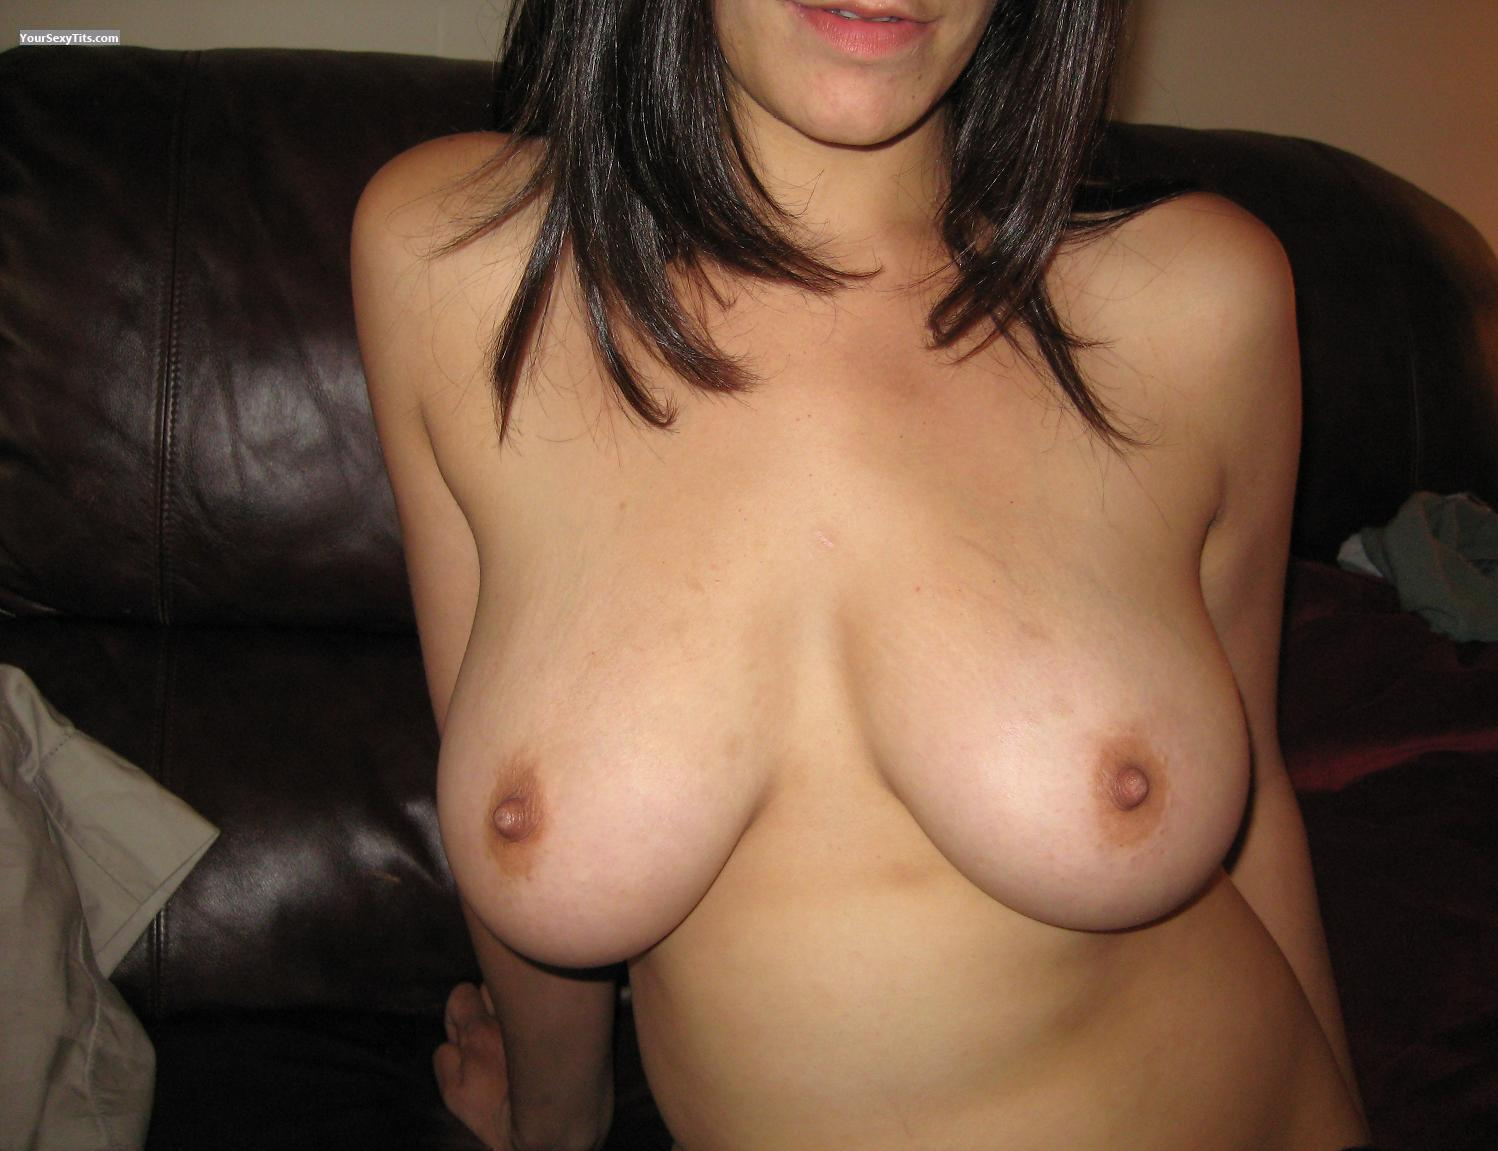 Tit Flash: Big Tits - Mika from Canada